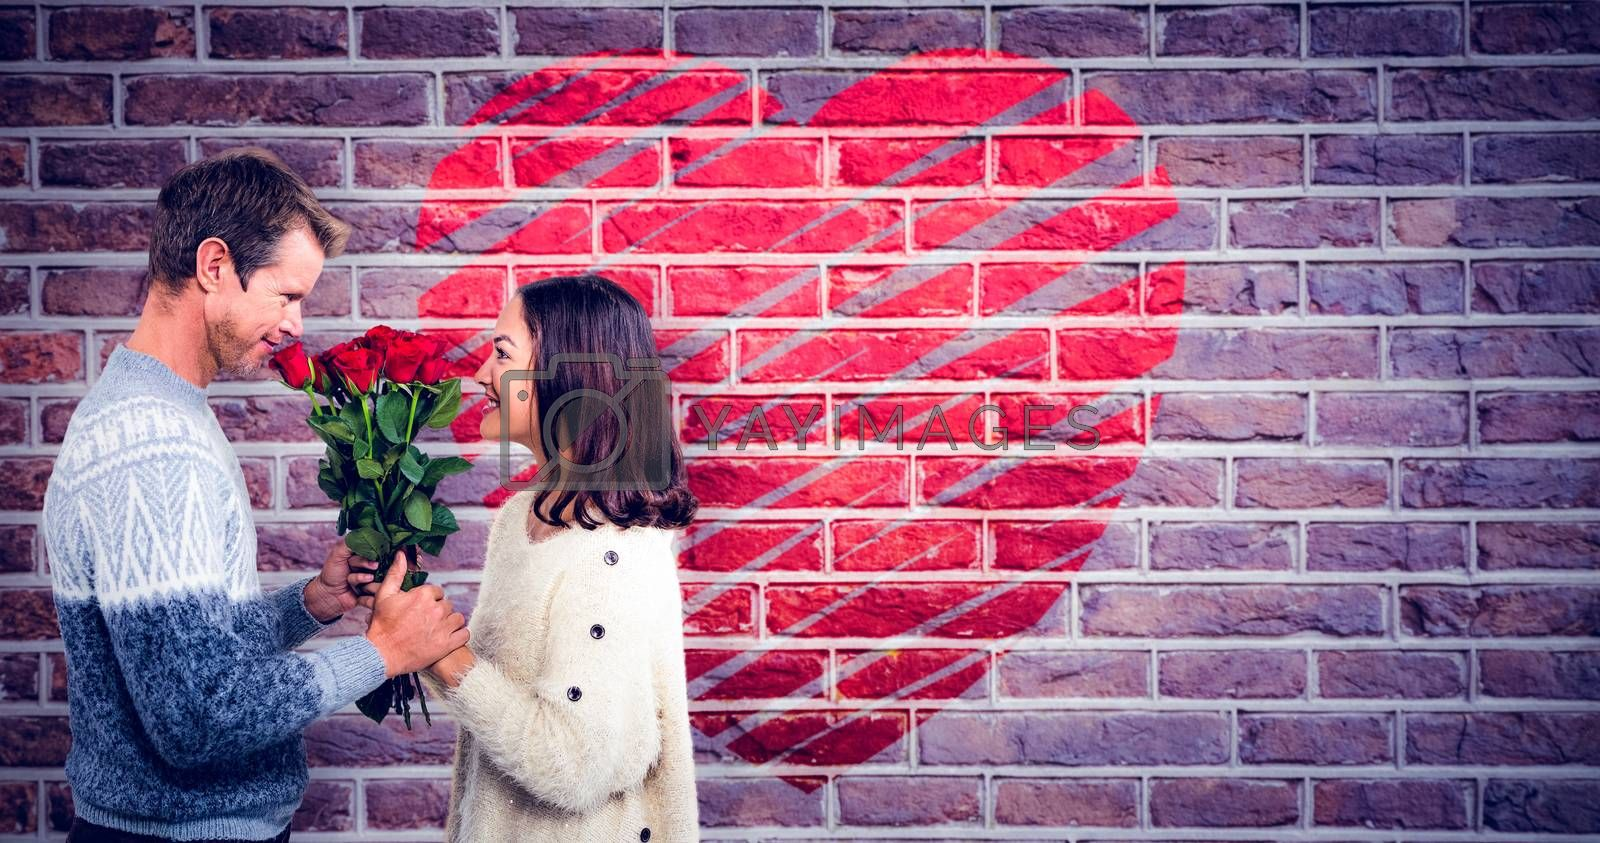 Romantic couple holding red roses against red brick wall